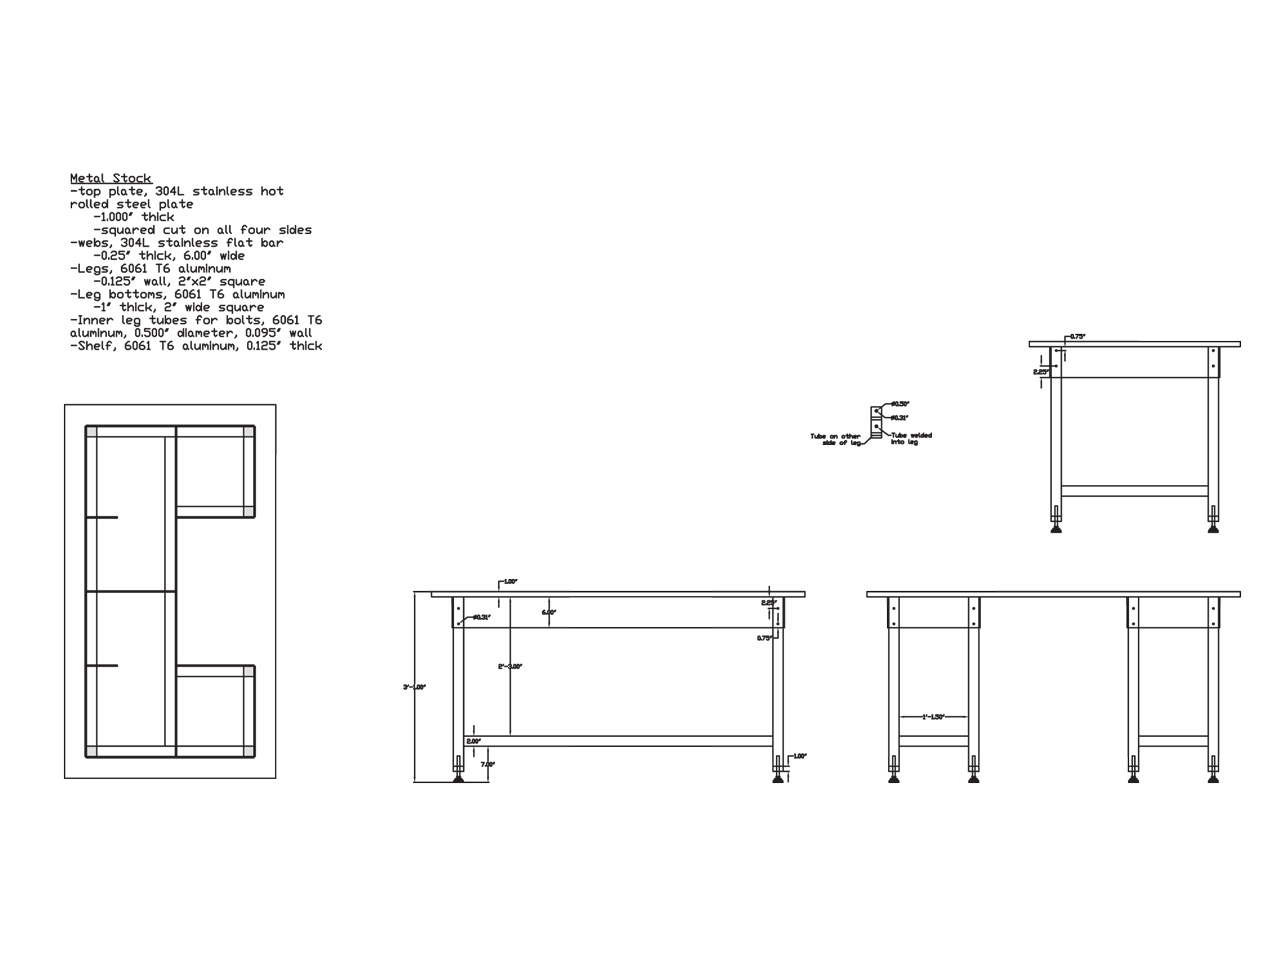 Welding Table Design Page 2